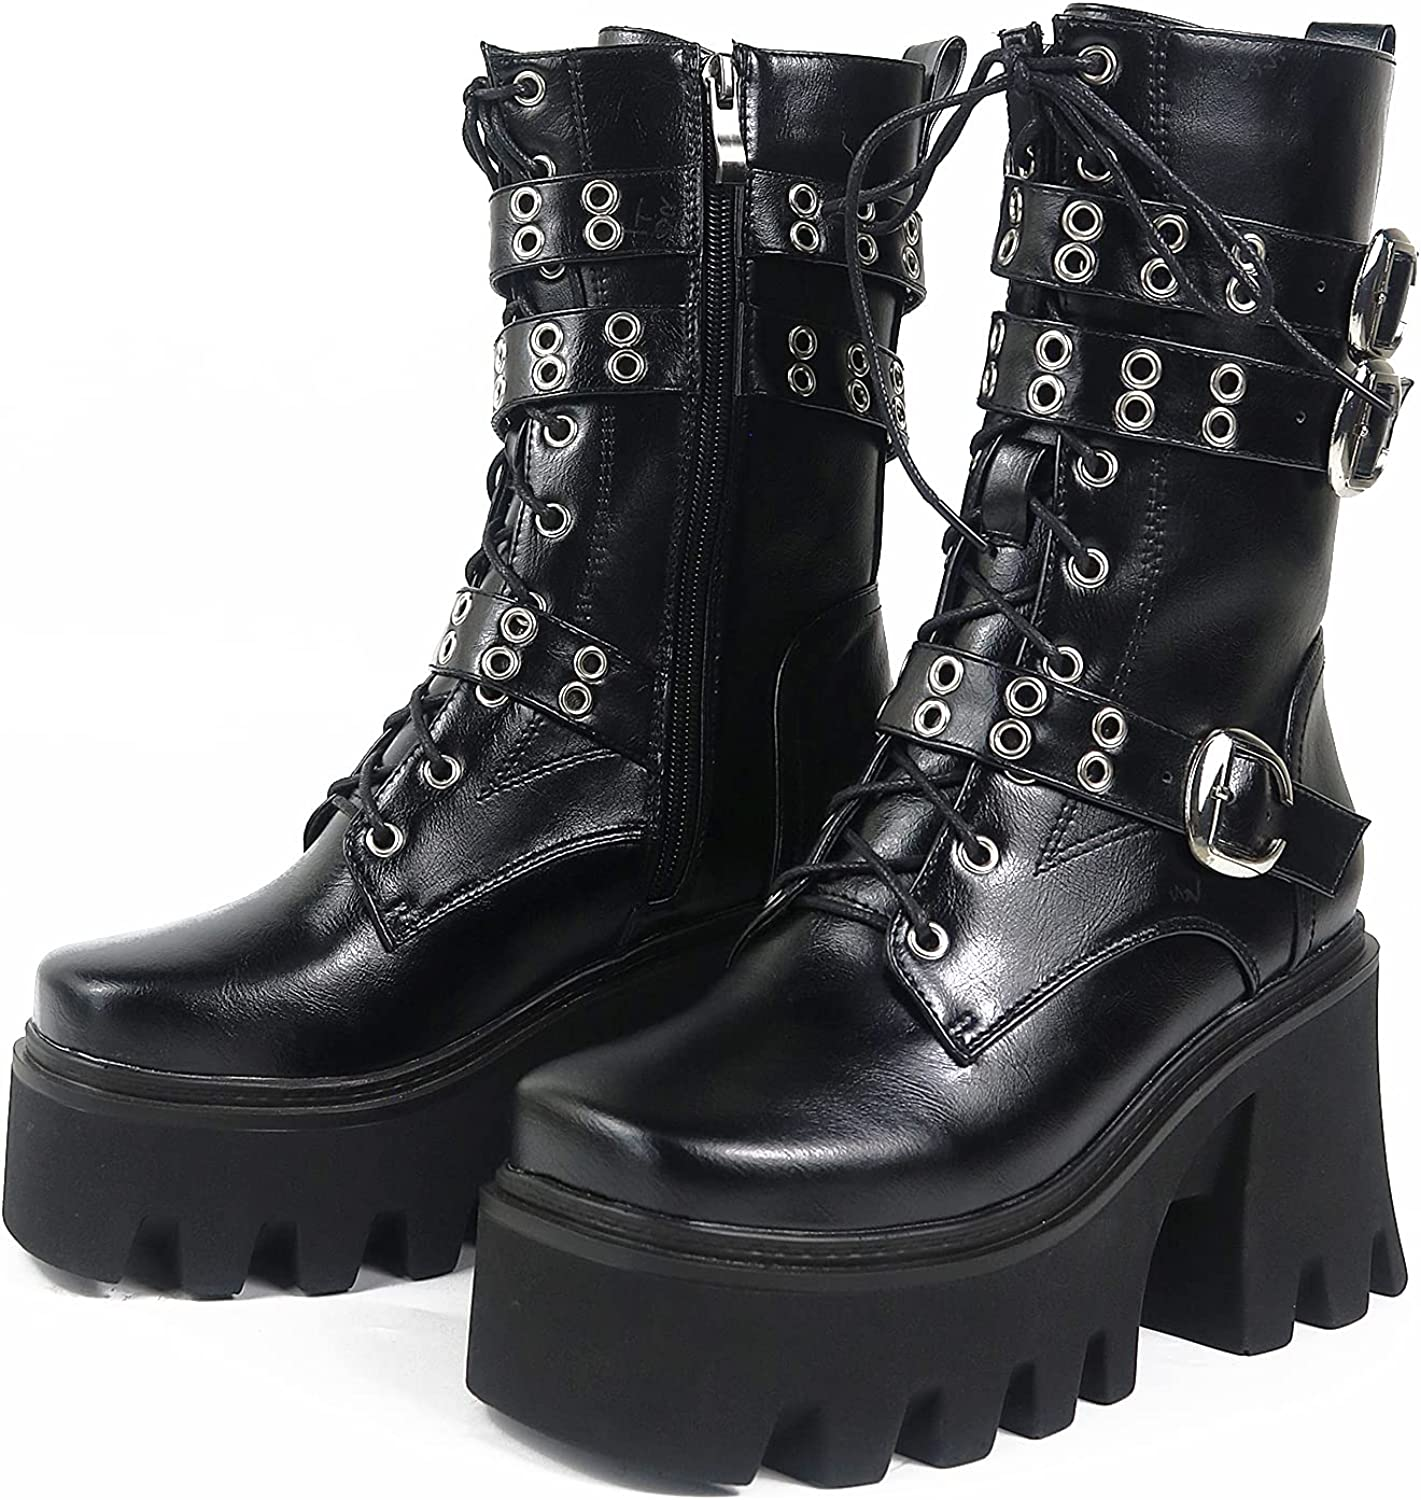 CYNLLIO Women's Platform Boots Goth Punk Multi Buckle High Heel Boots Cool Studded Ankle Booties with Zipper